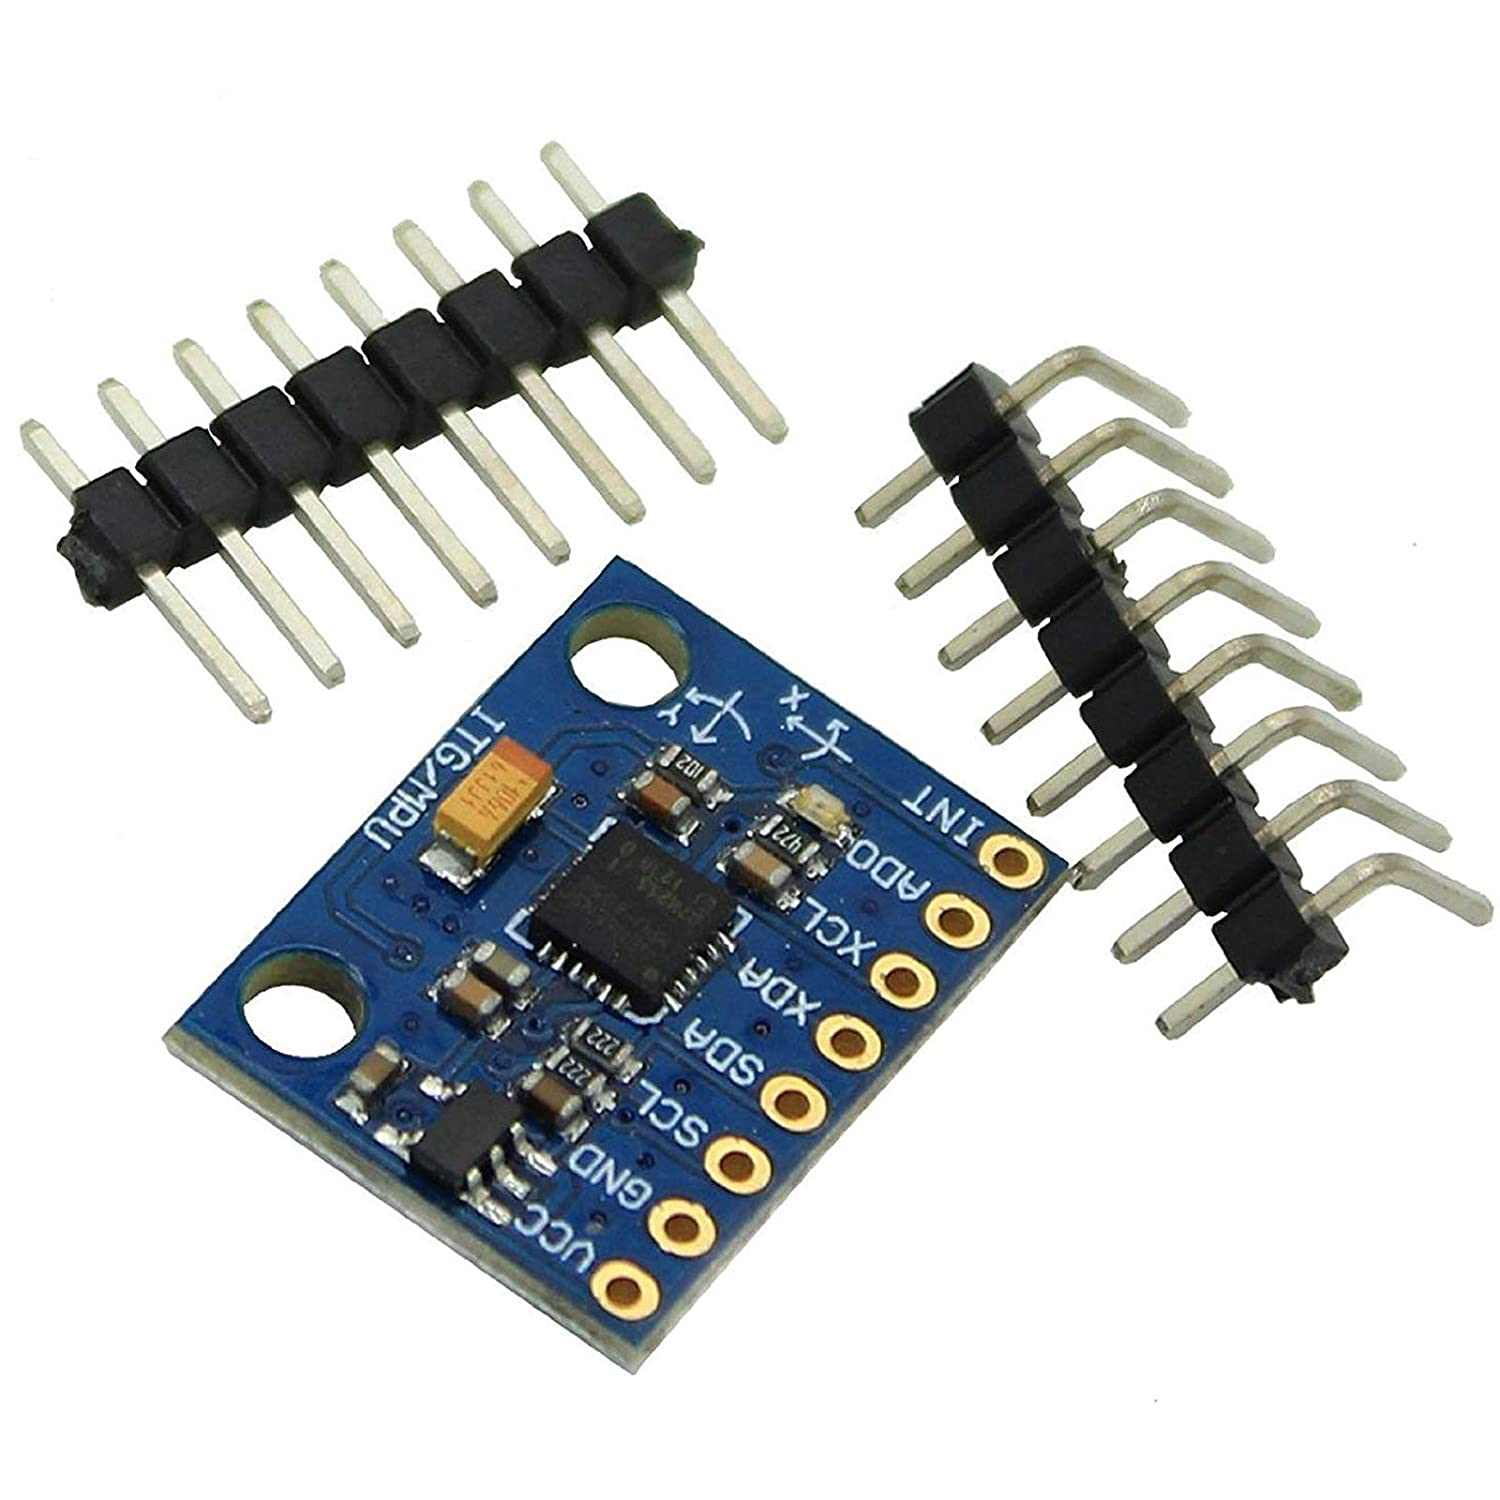 REES52 GY-521 Mpu6050 Module+ 3 Accelerometer for Arduino